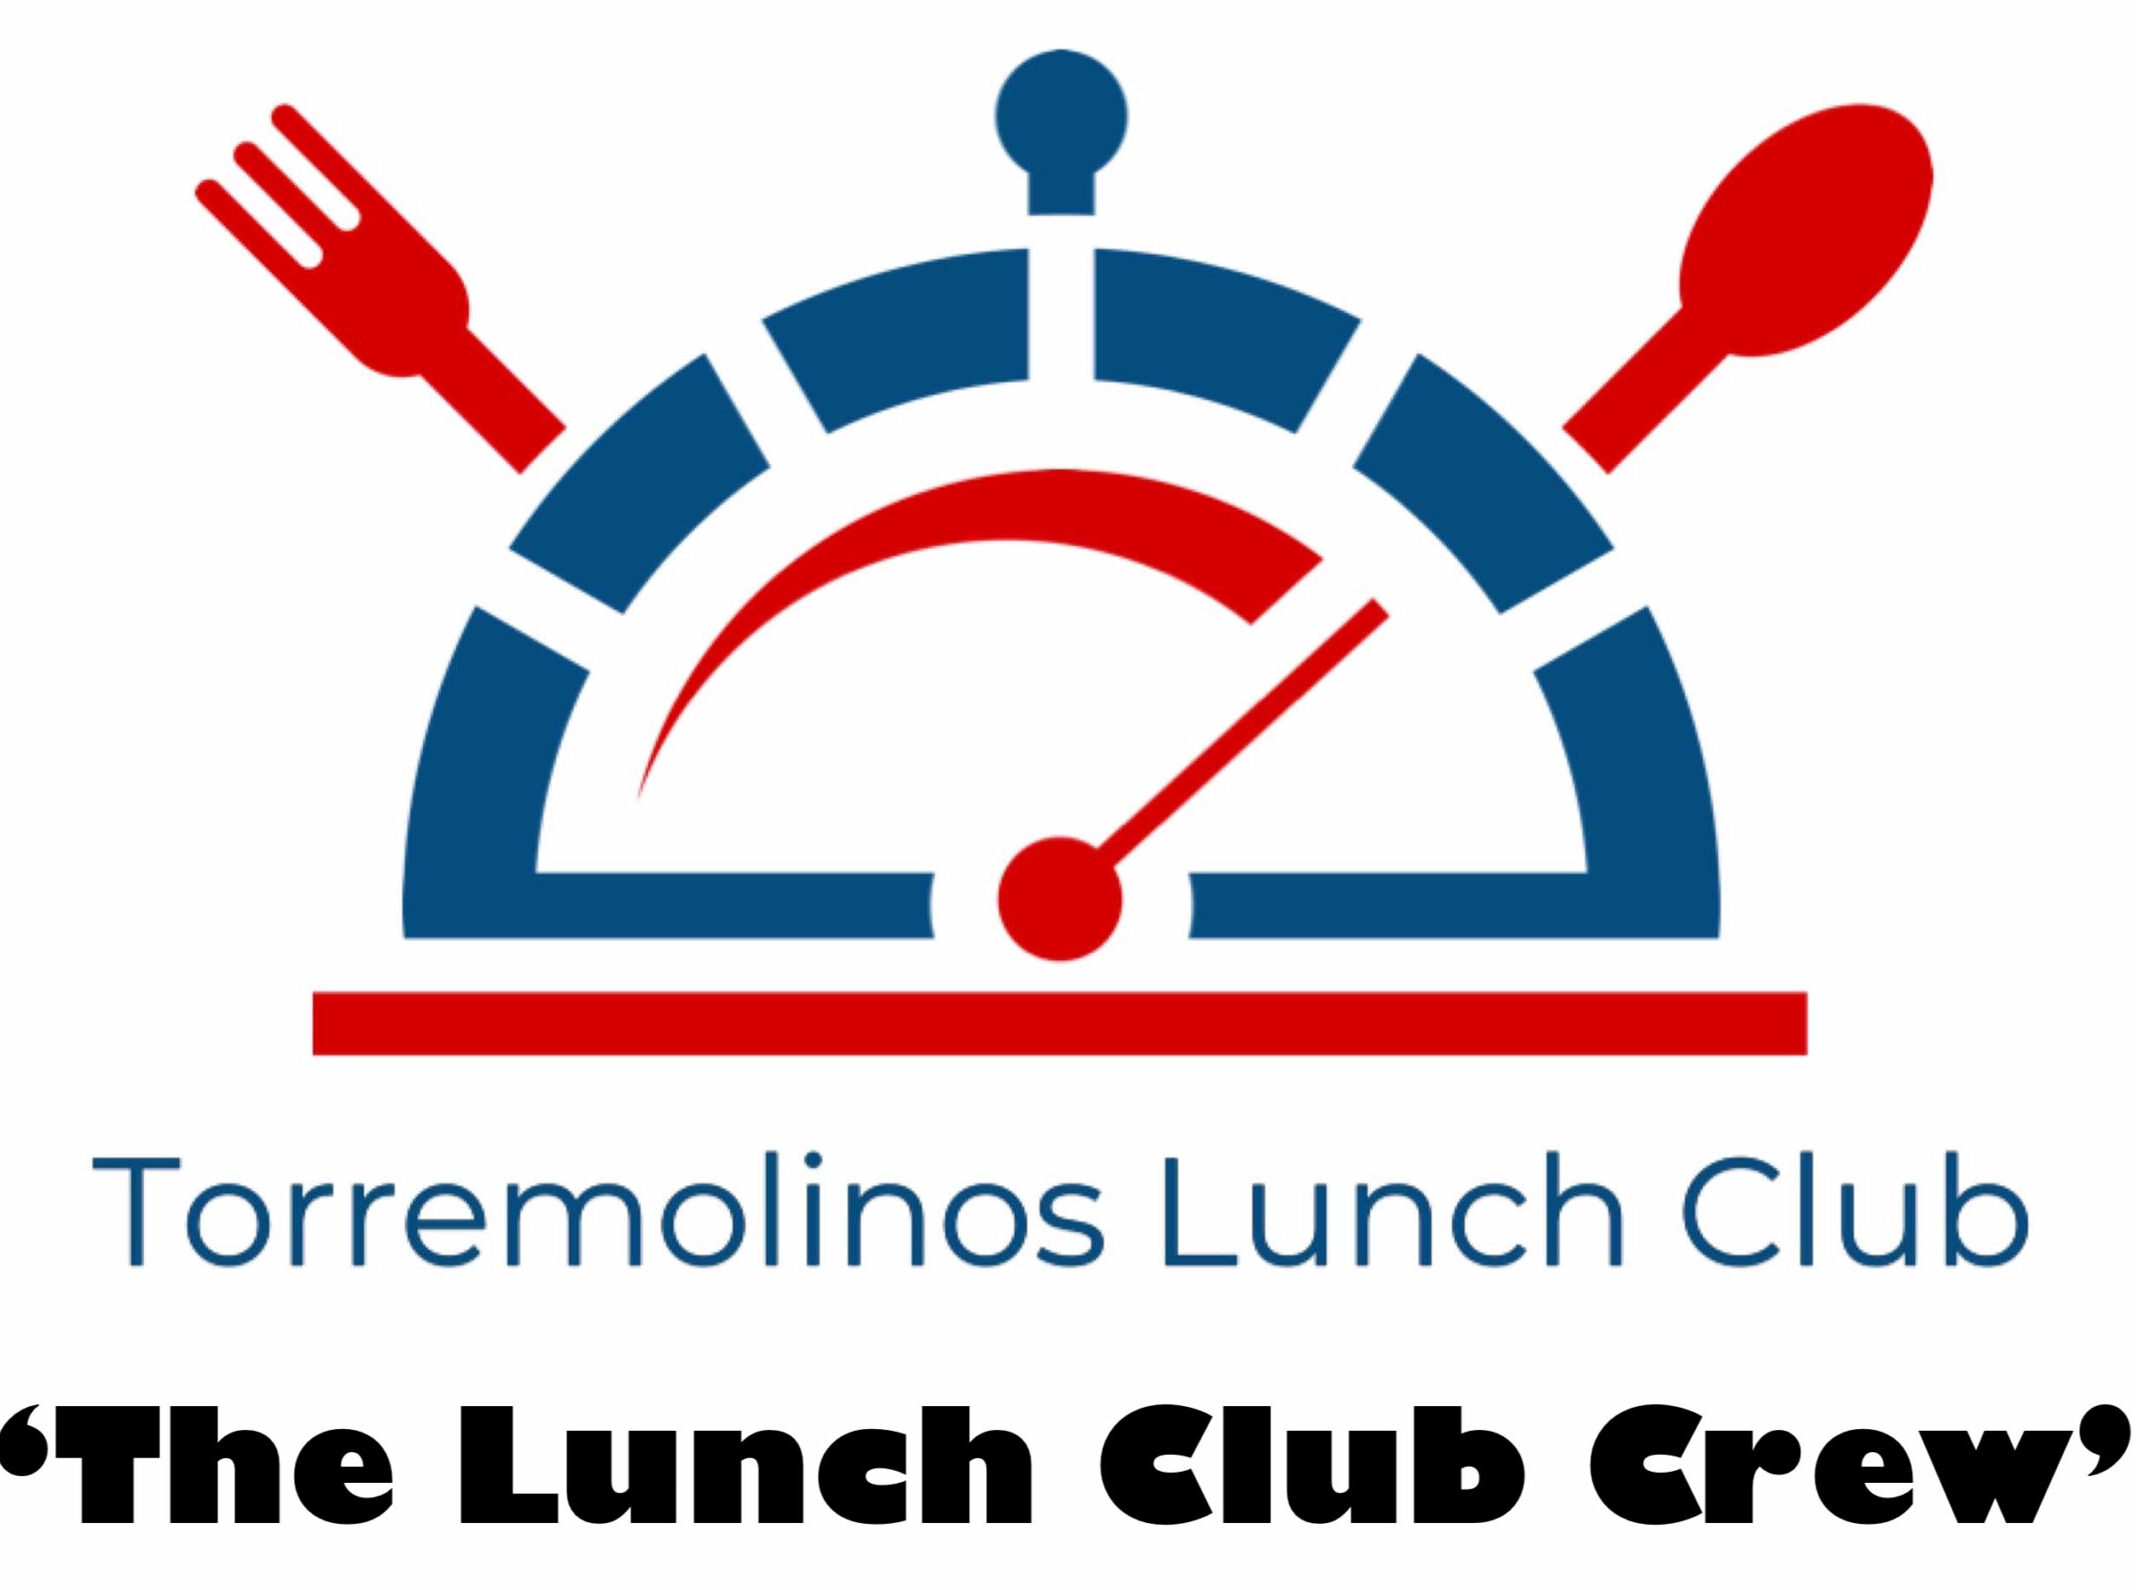 Torremolinos Lunch Club